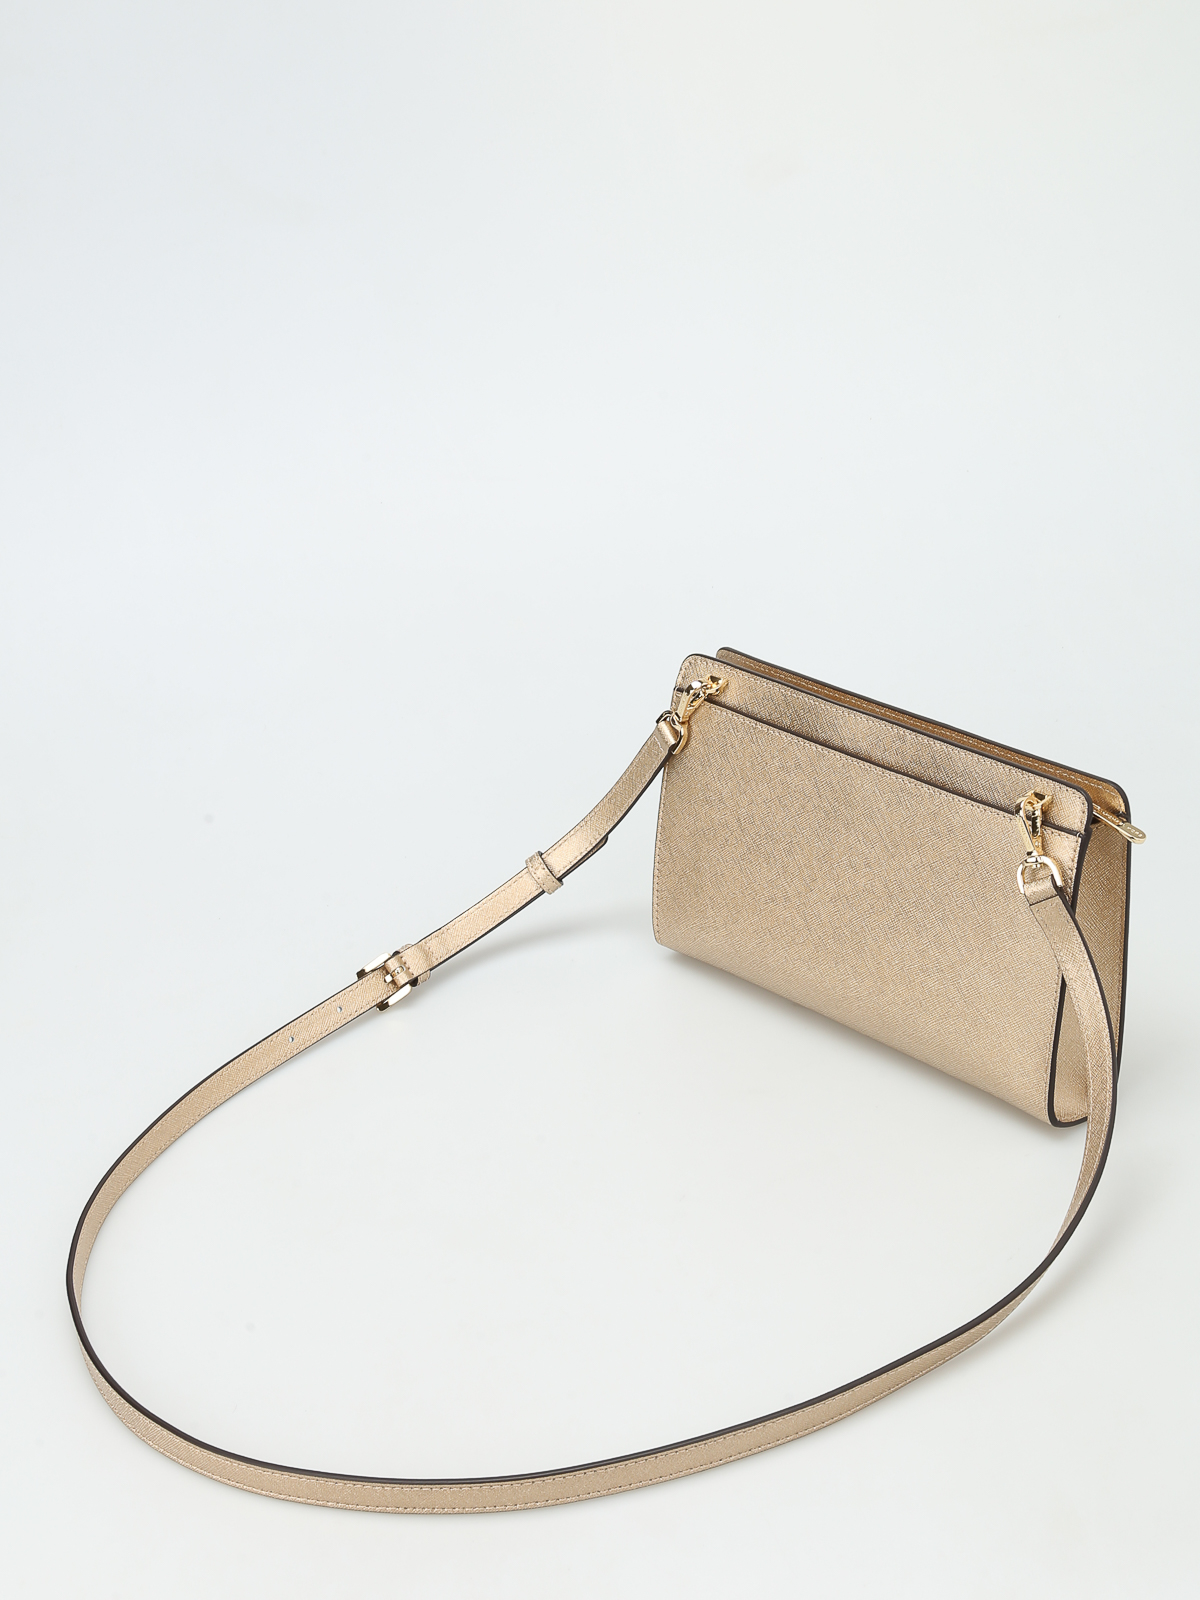 3bec4ac520ba5 iKRIX MICHAEL KORS: cross body bags - Jet Set Travel large clutch